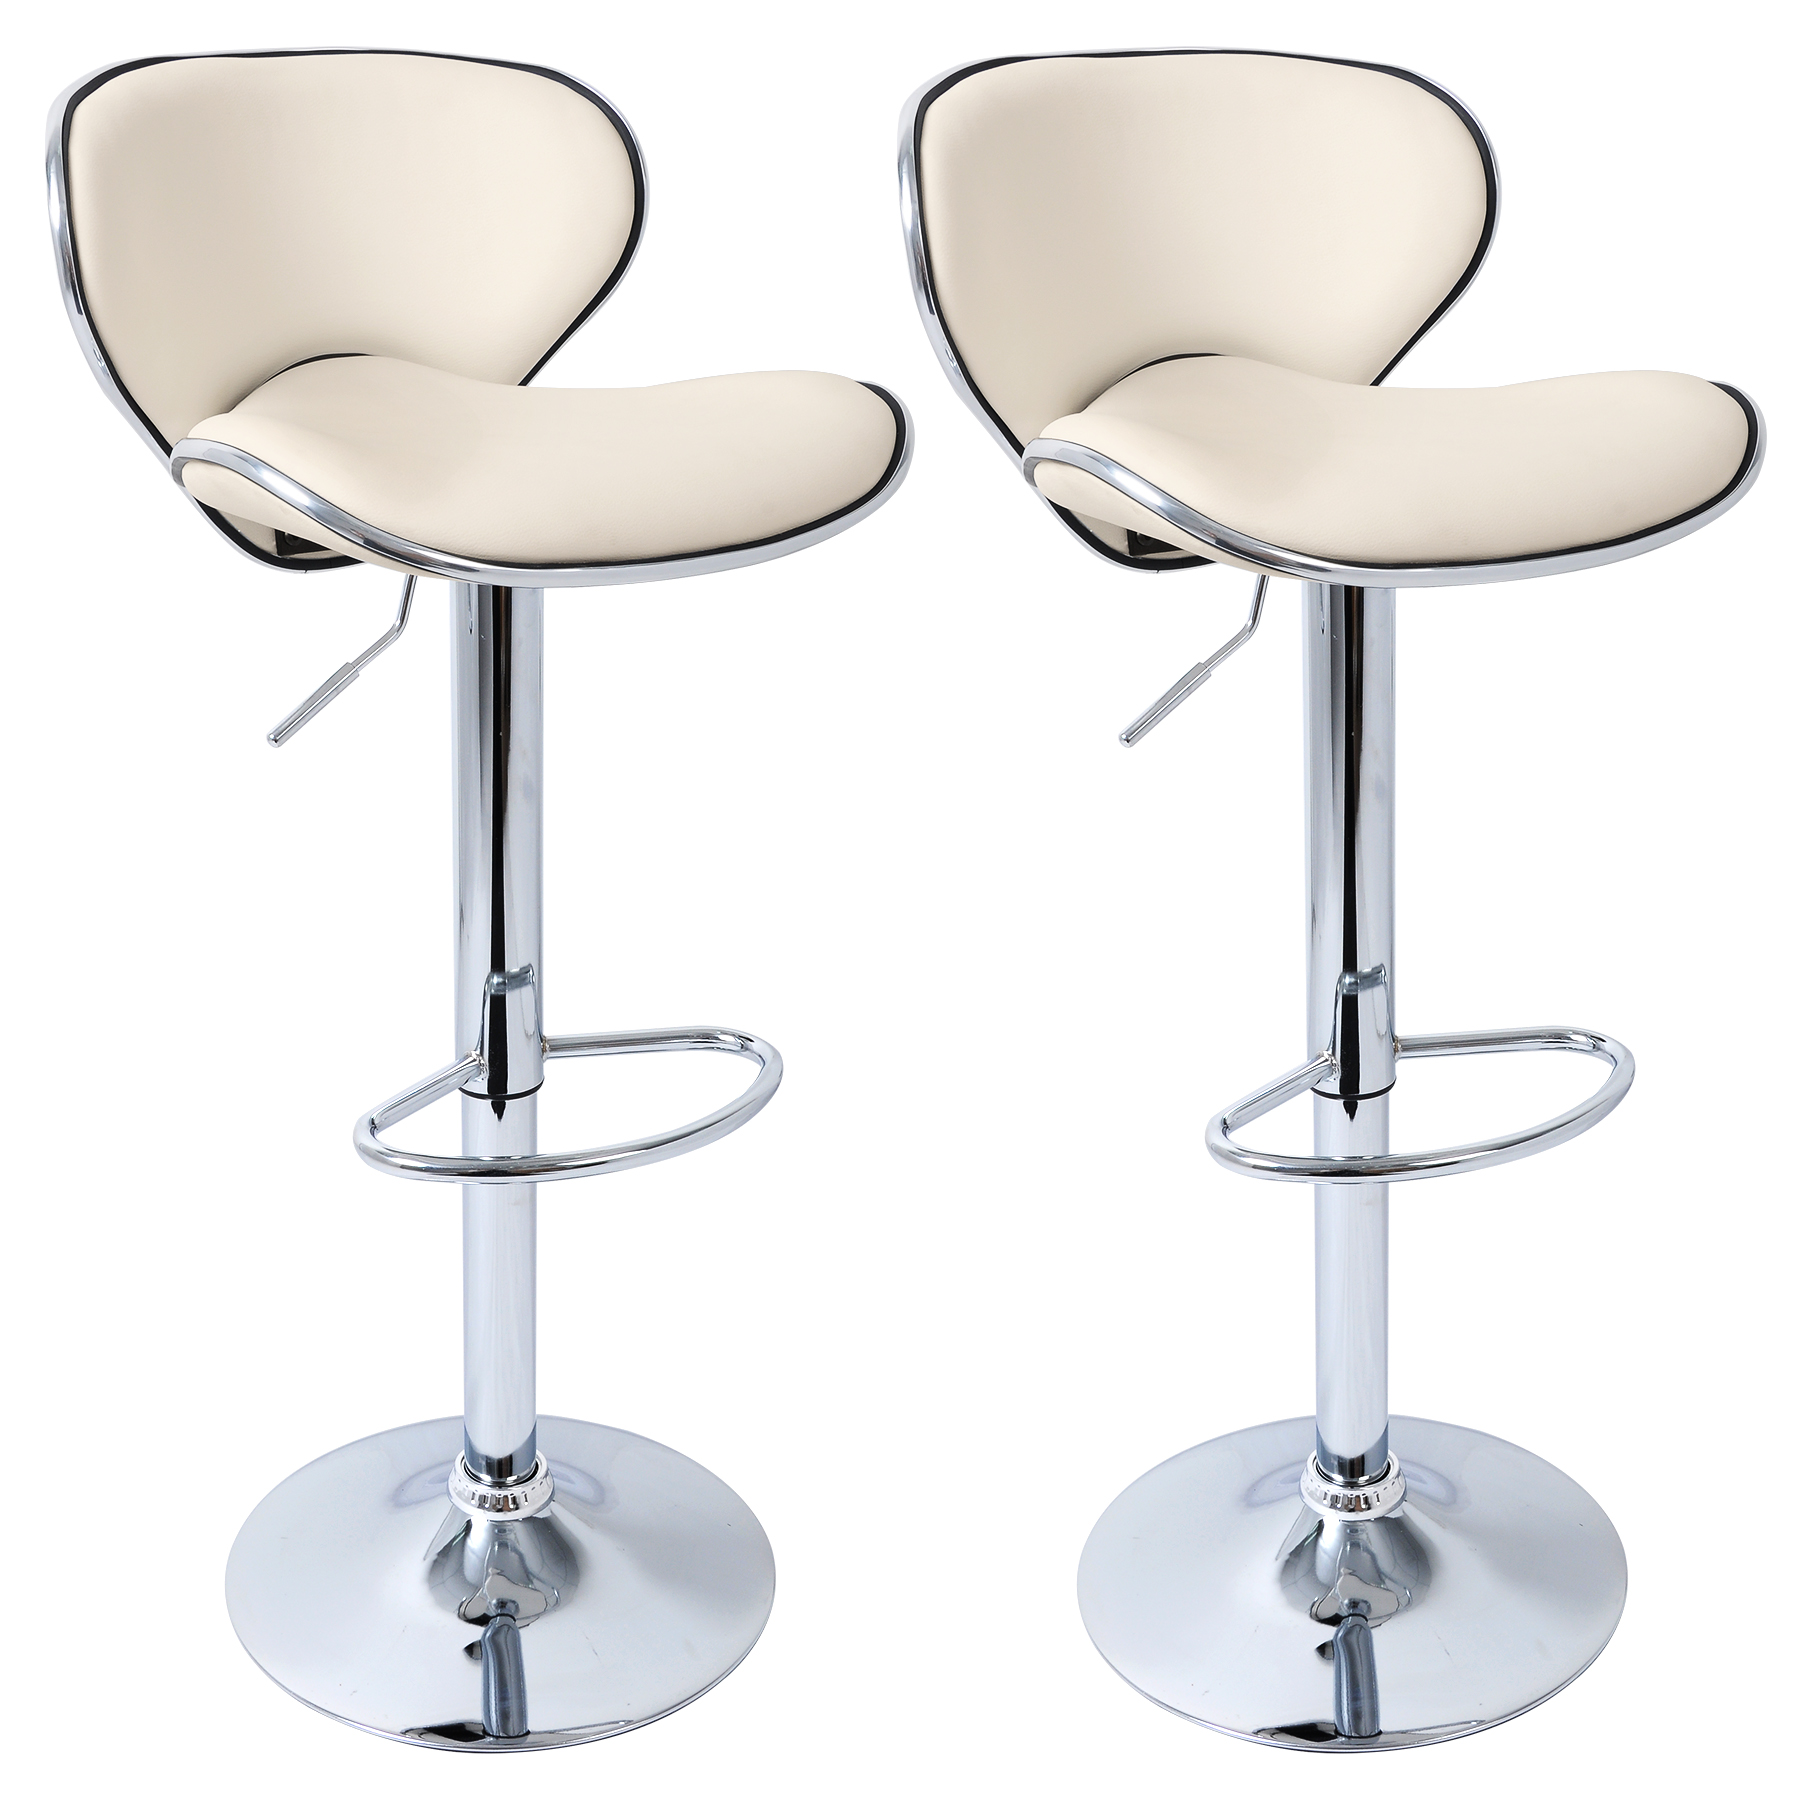 2 x bar stools kitchen chair swivel breakfast stool chrome for Kitchen swivel bar stools